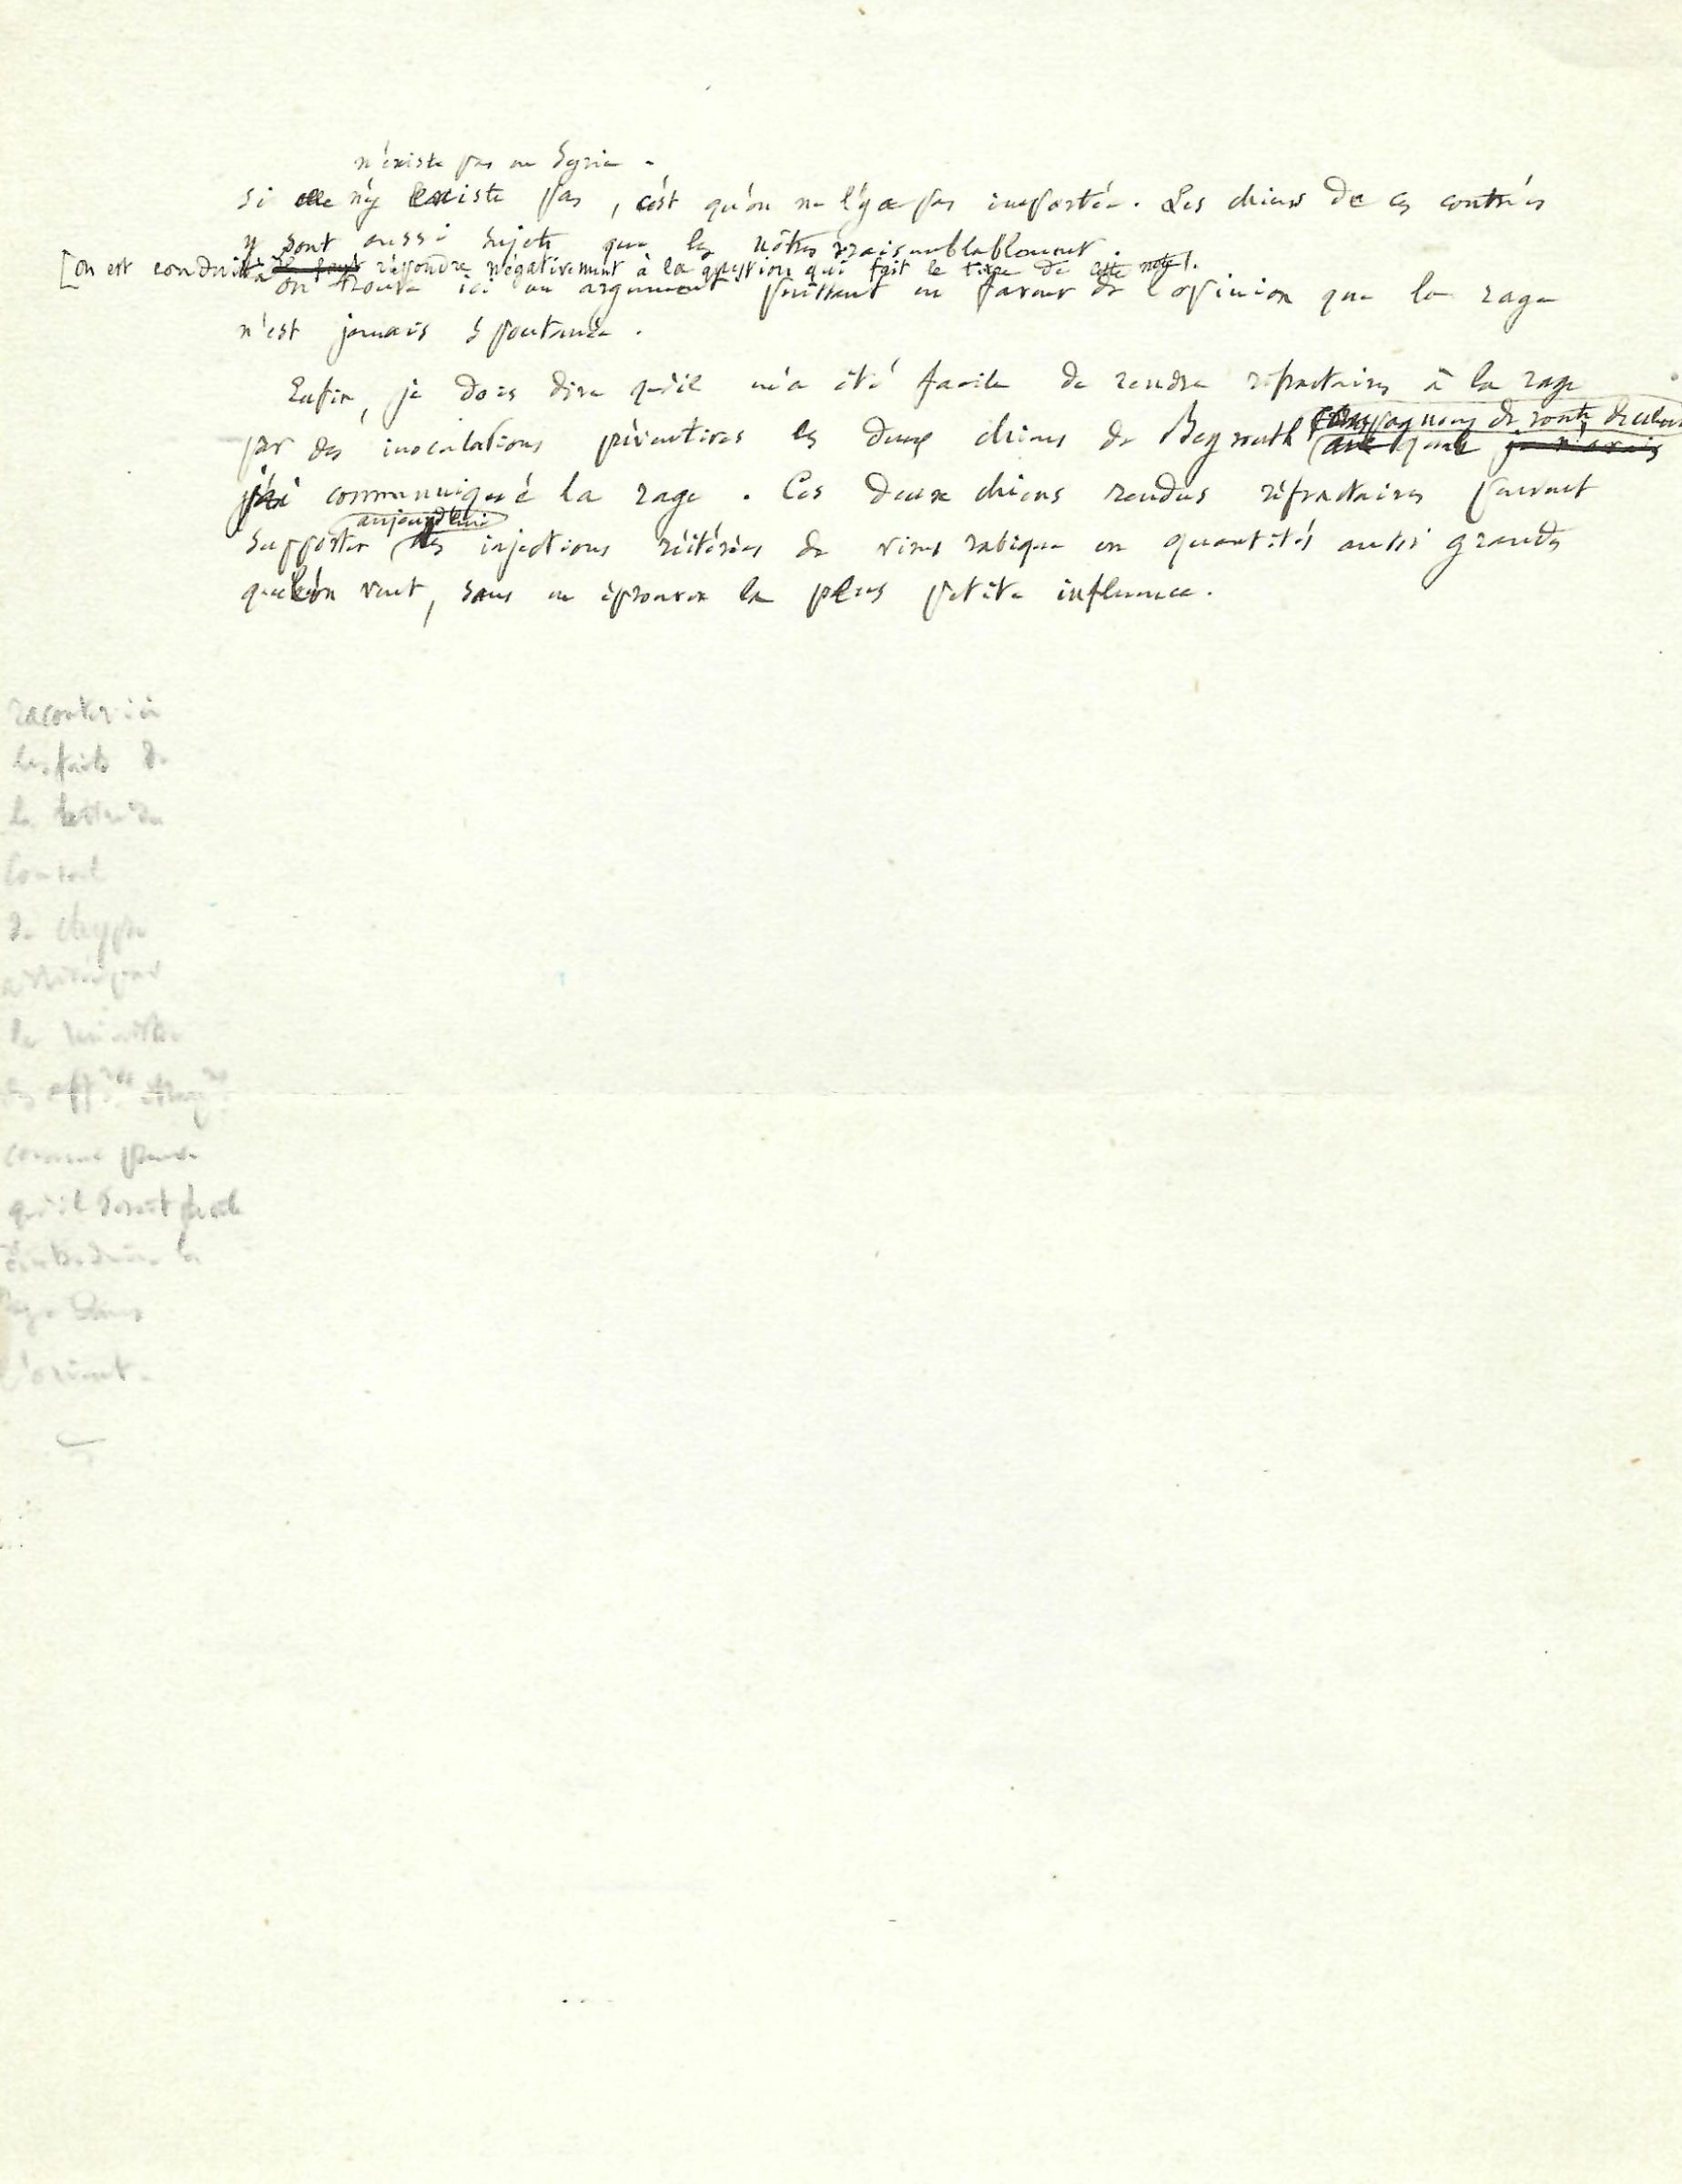 Remarkable Pasteur Manuscript on Rabies Research Eight Months before the First Successful Human Vaccination